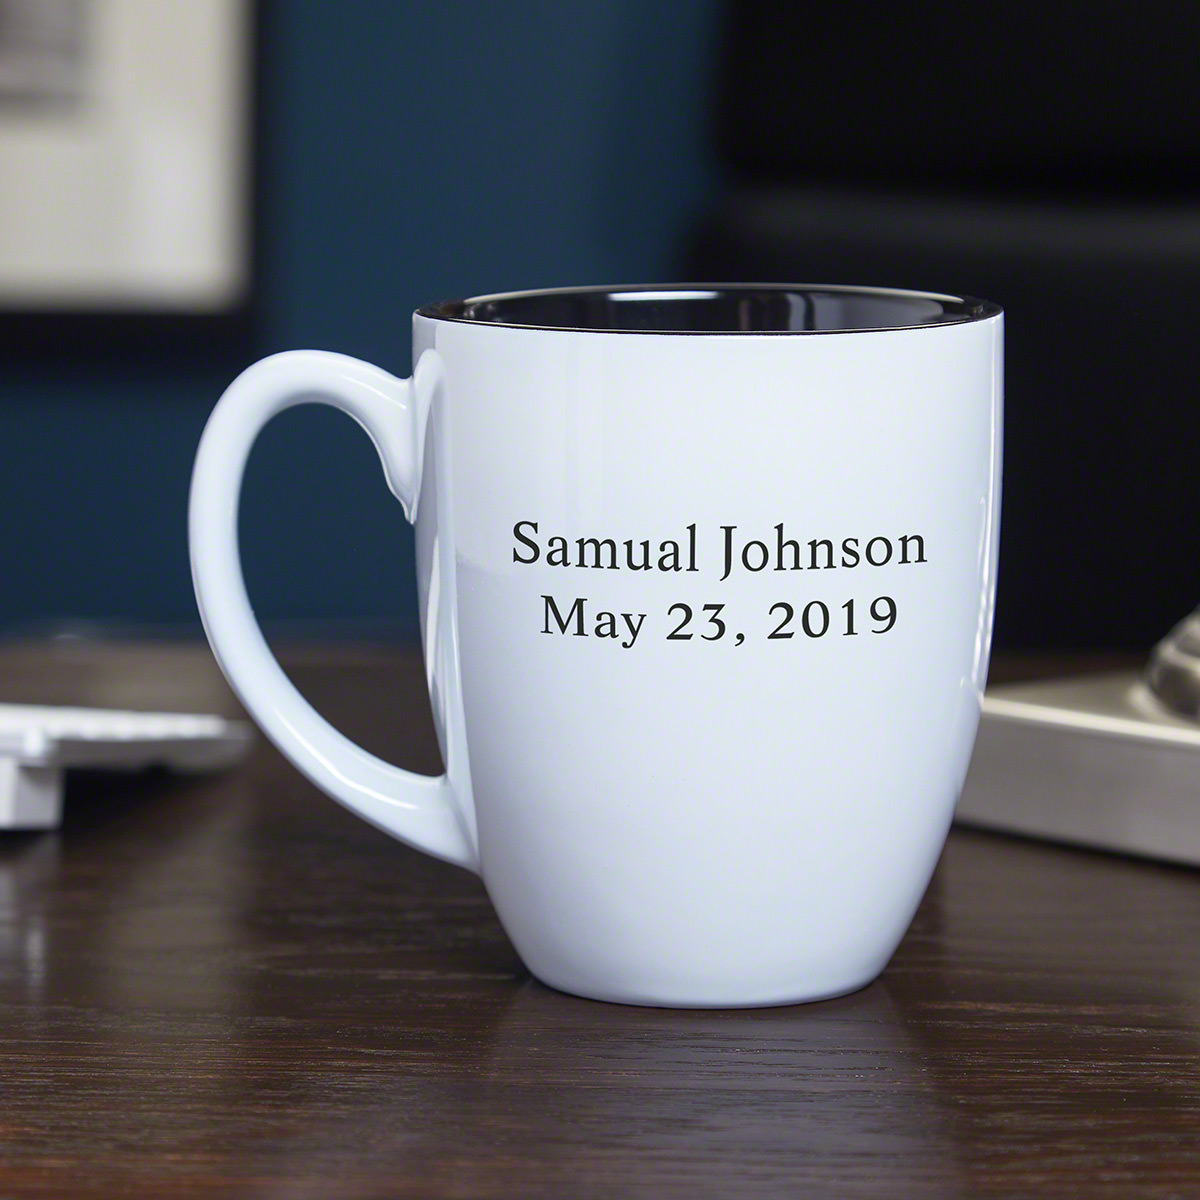 Whether at home or the office, everyone has their go-to morning beverage, and our BarElements Personalized Coffee Mug is the perfect way to drink it. Made with a dazzling white exterior, each ceramic cup comes engraved with up to two lines of custom text #mug